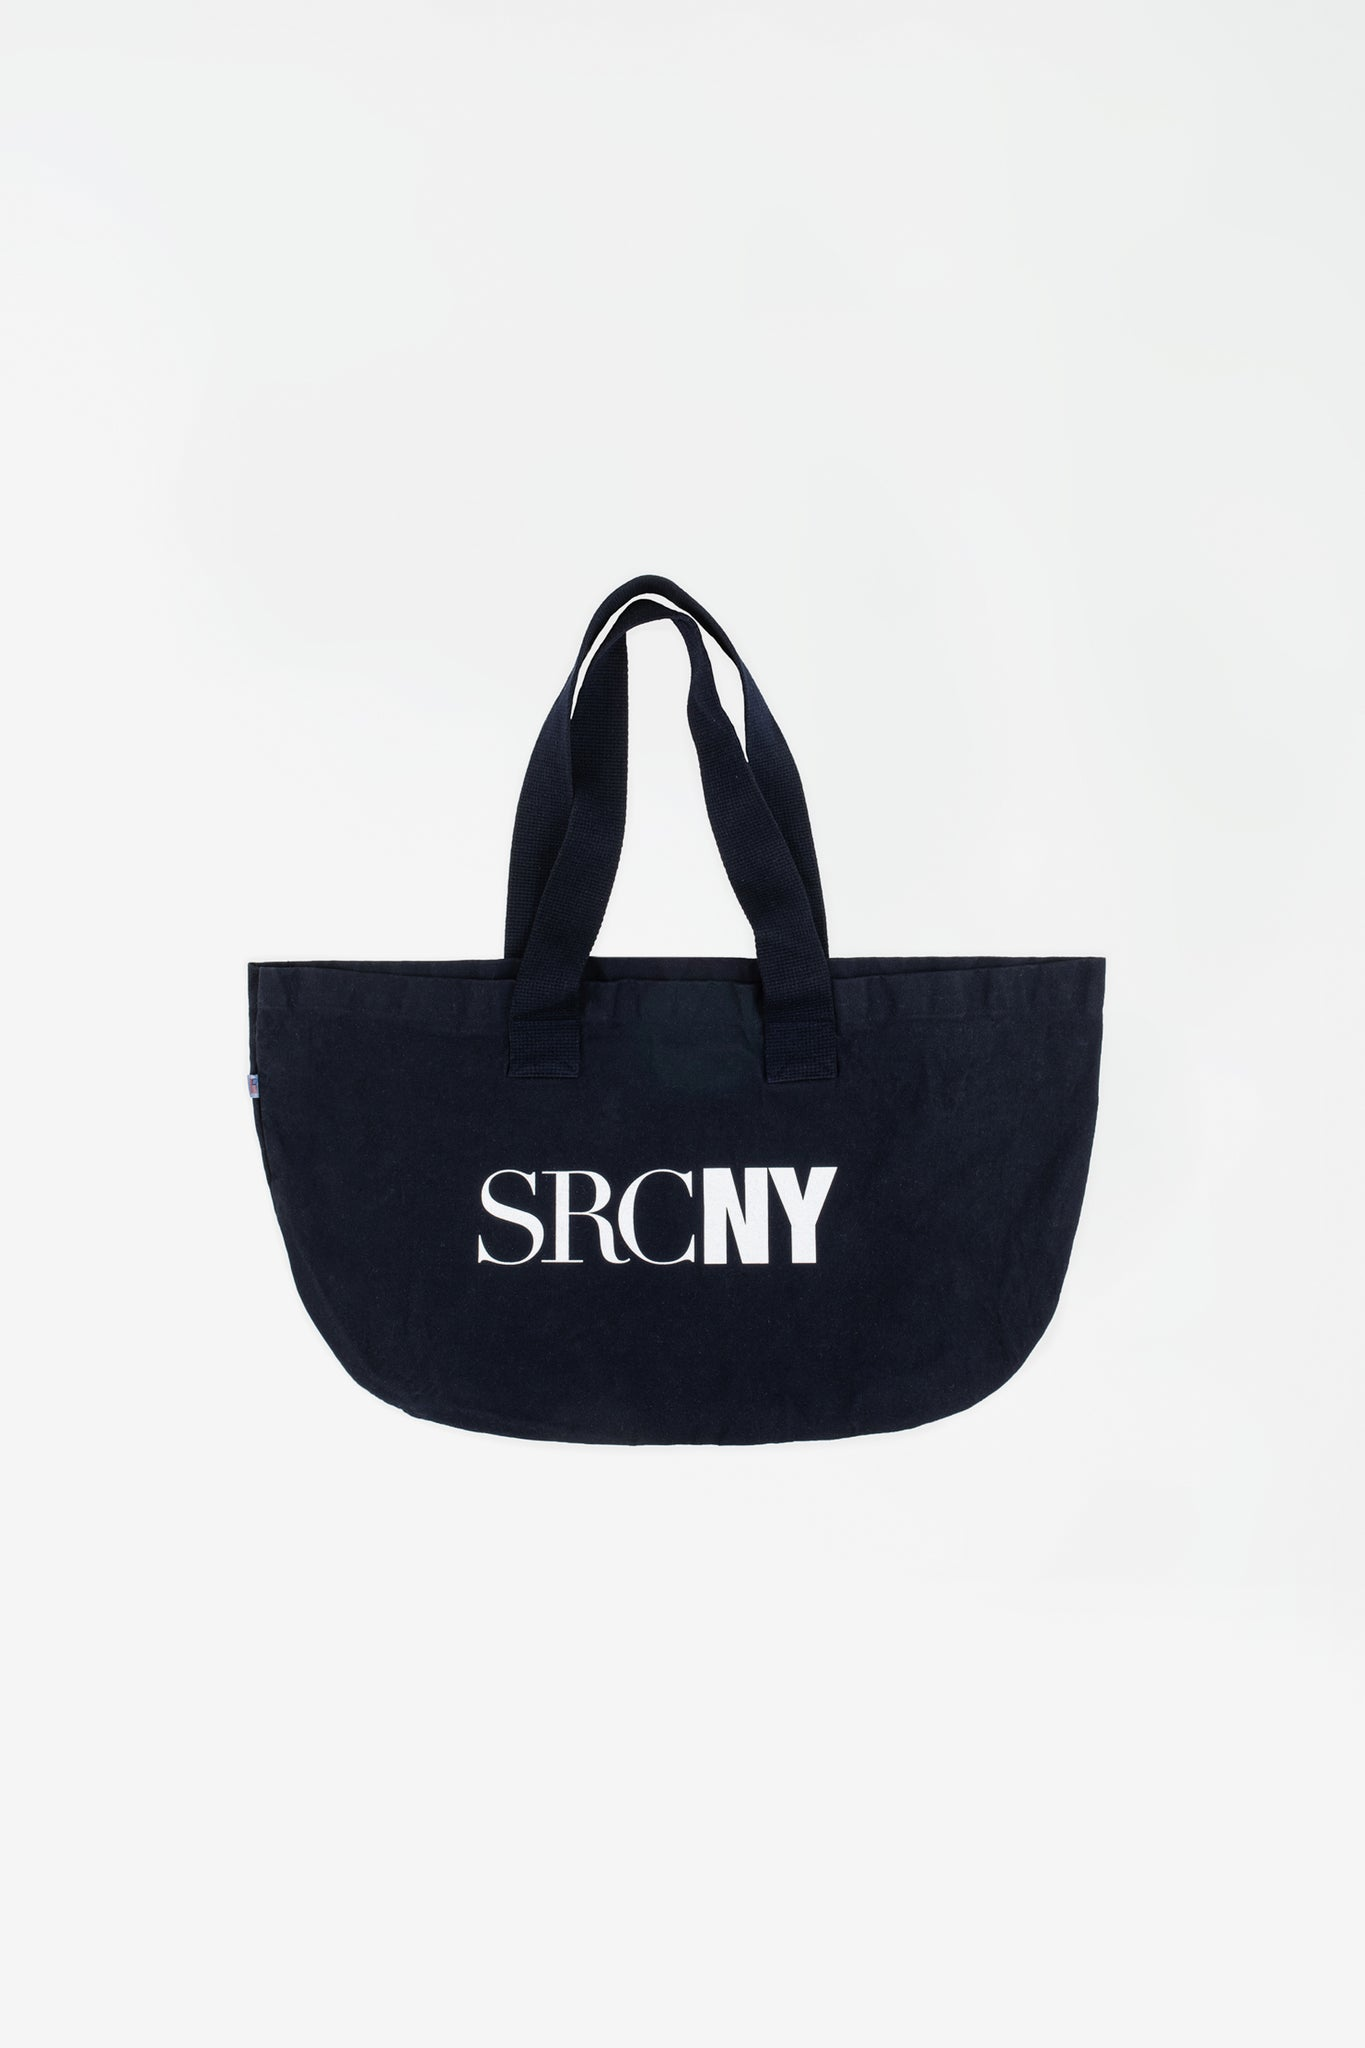 SCRNY Tote bag navy/white print